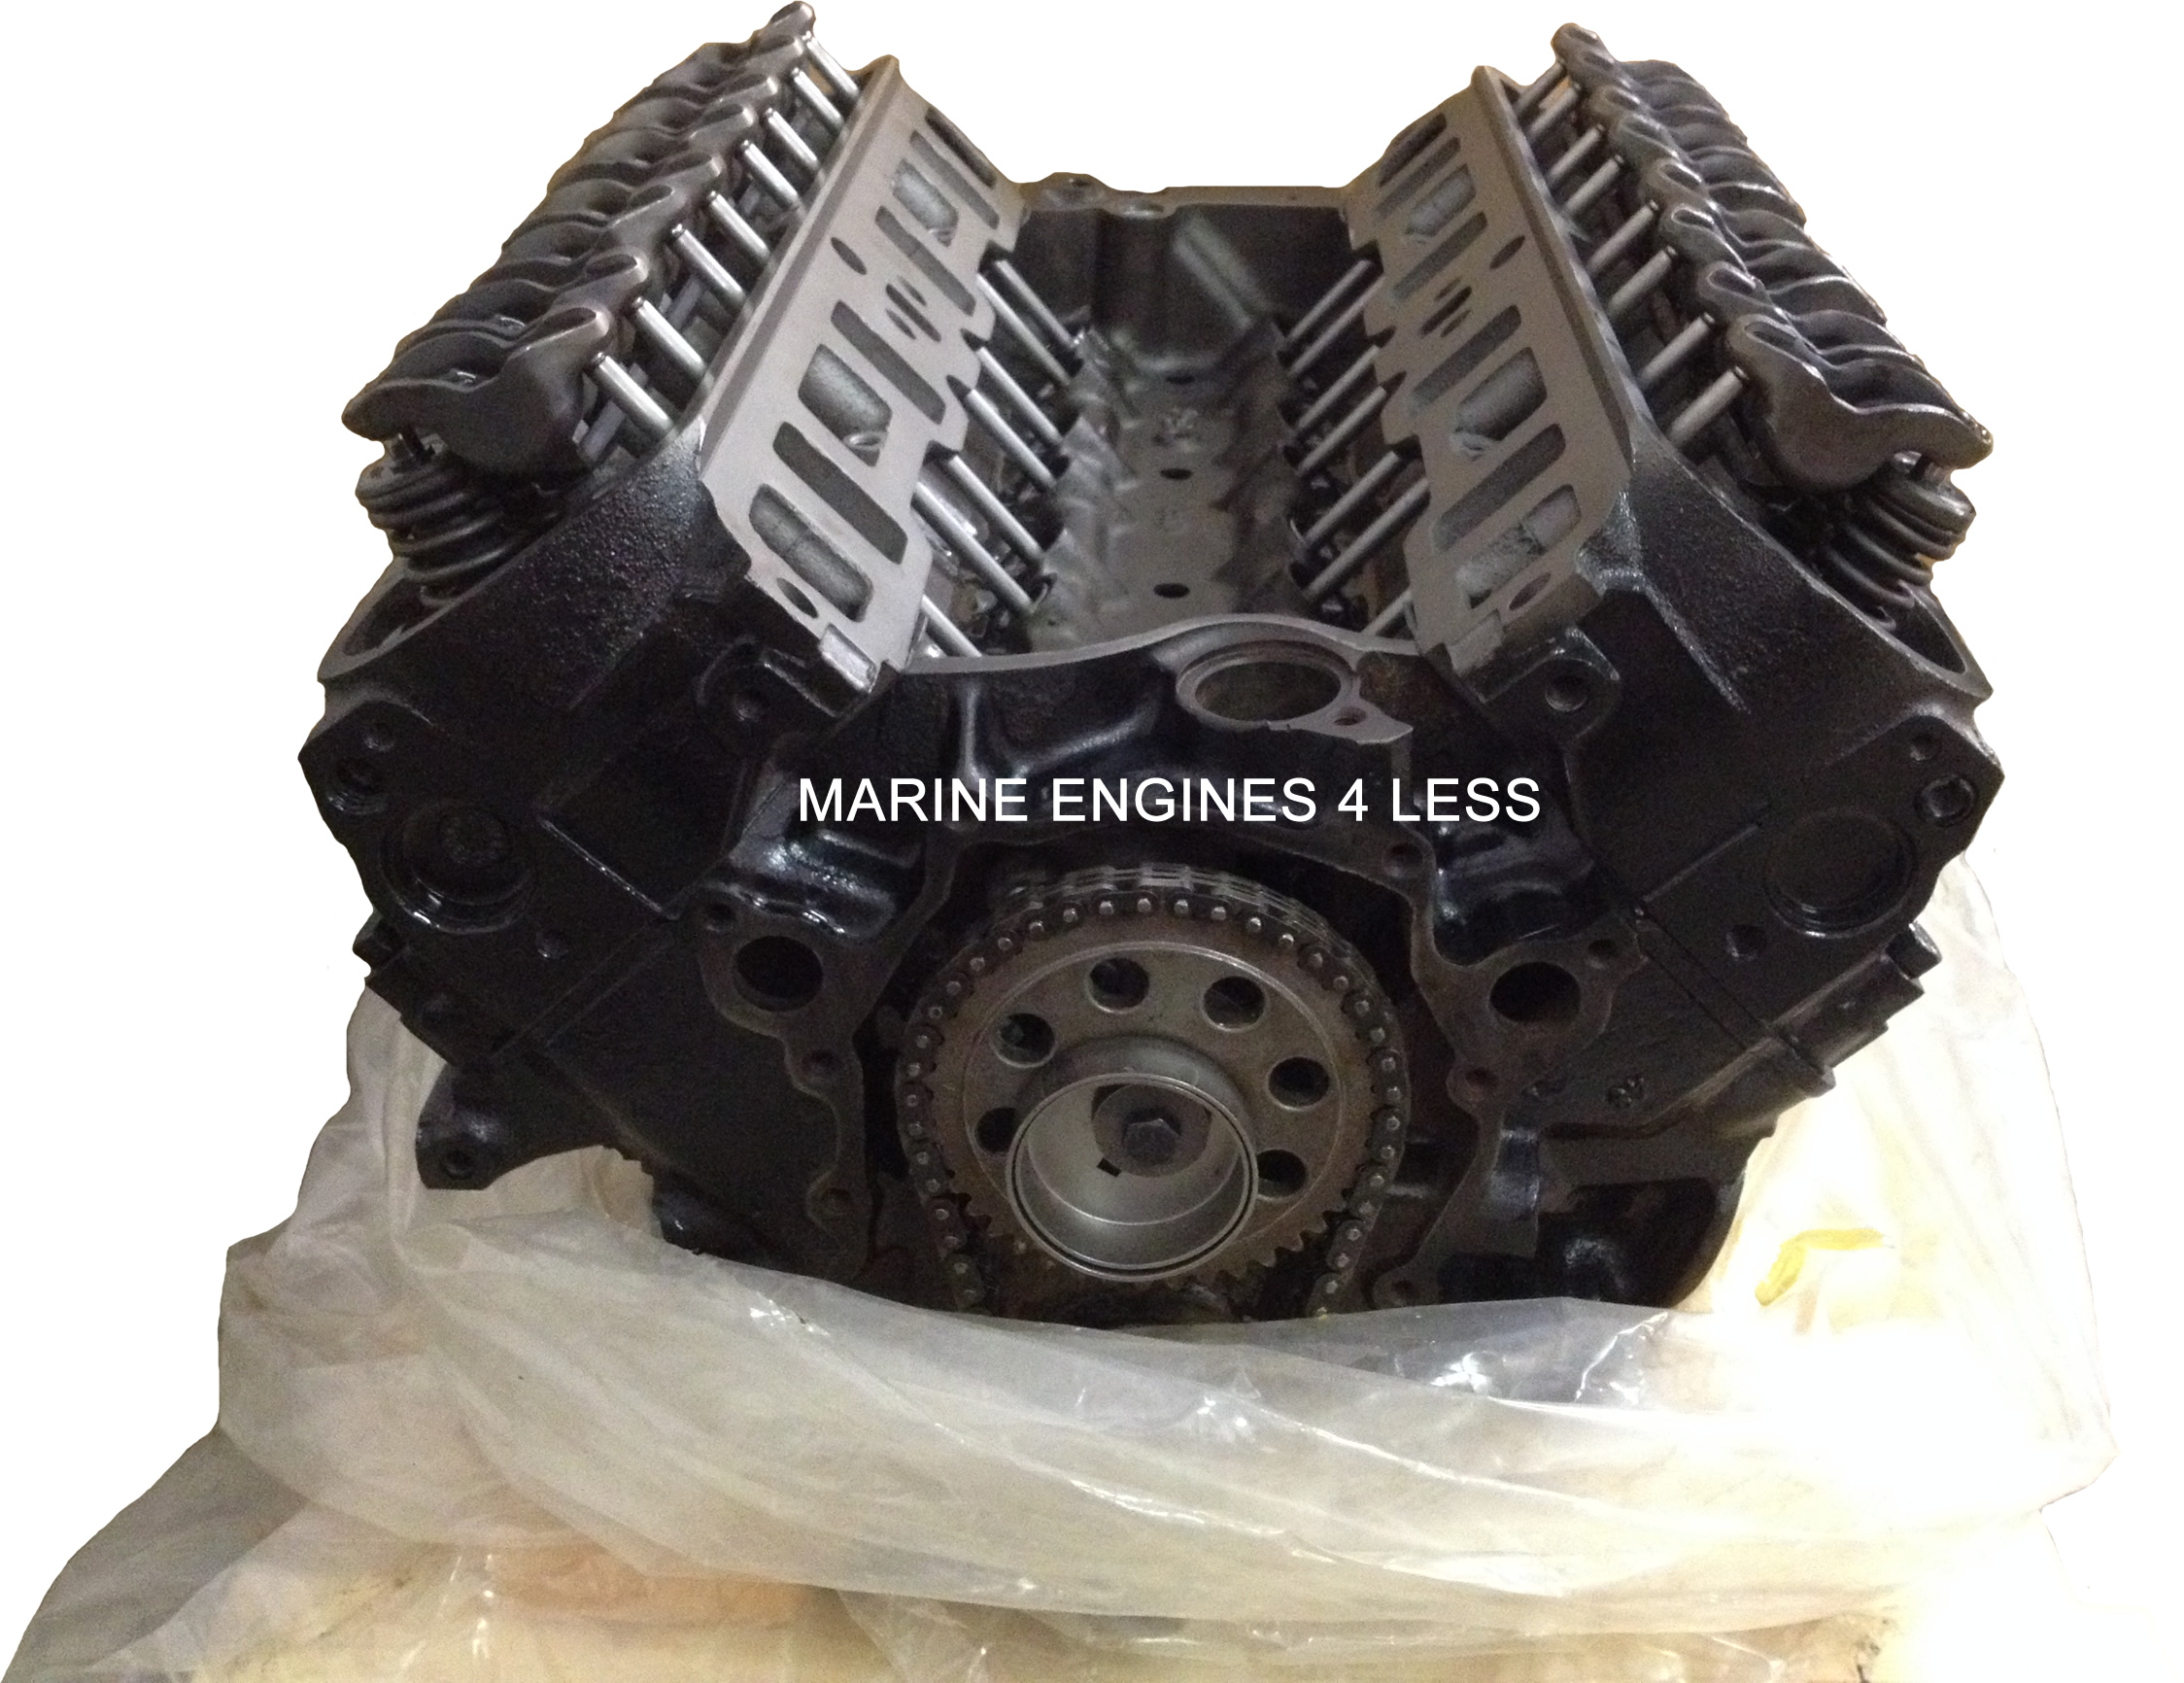 remanufactured 5 8l (351w) ford marine engine ski nautique wiring diagram difference between a ford 351 windsor